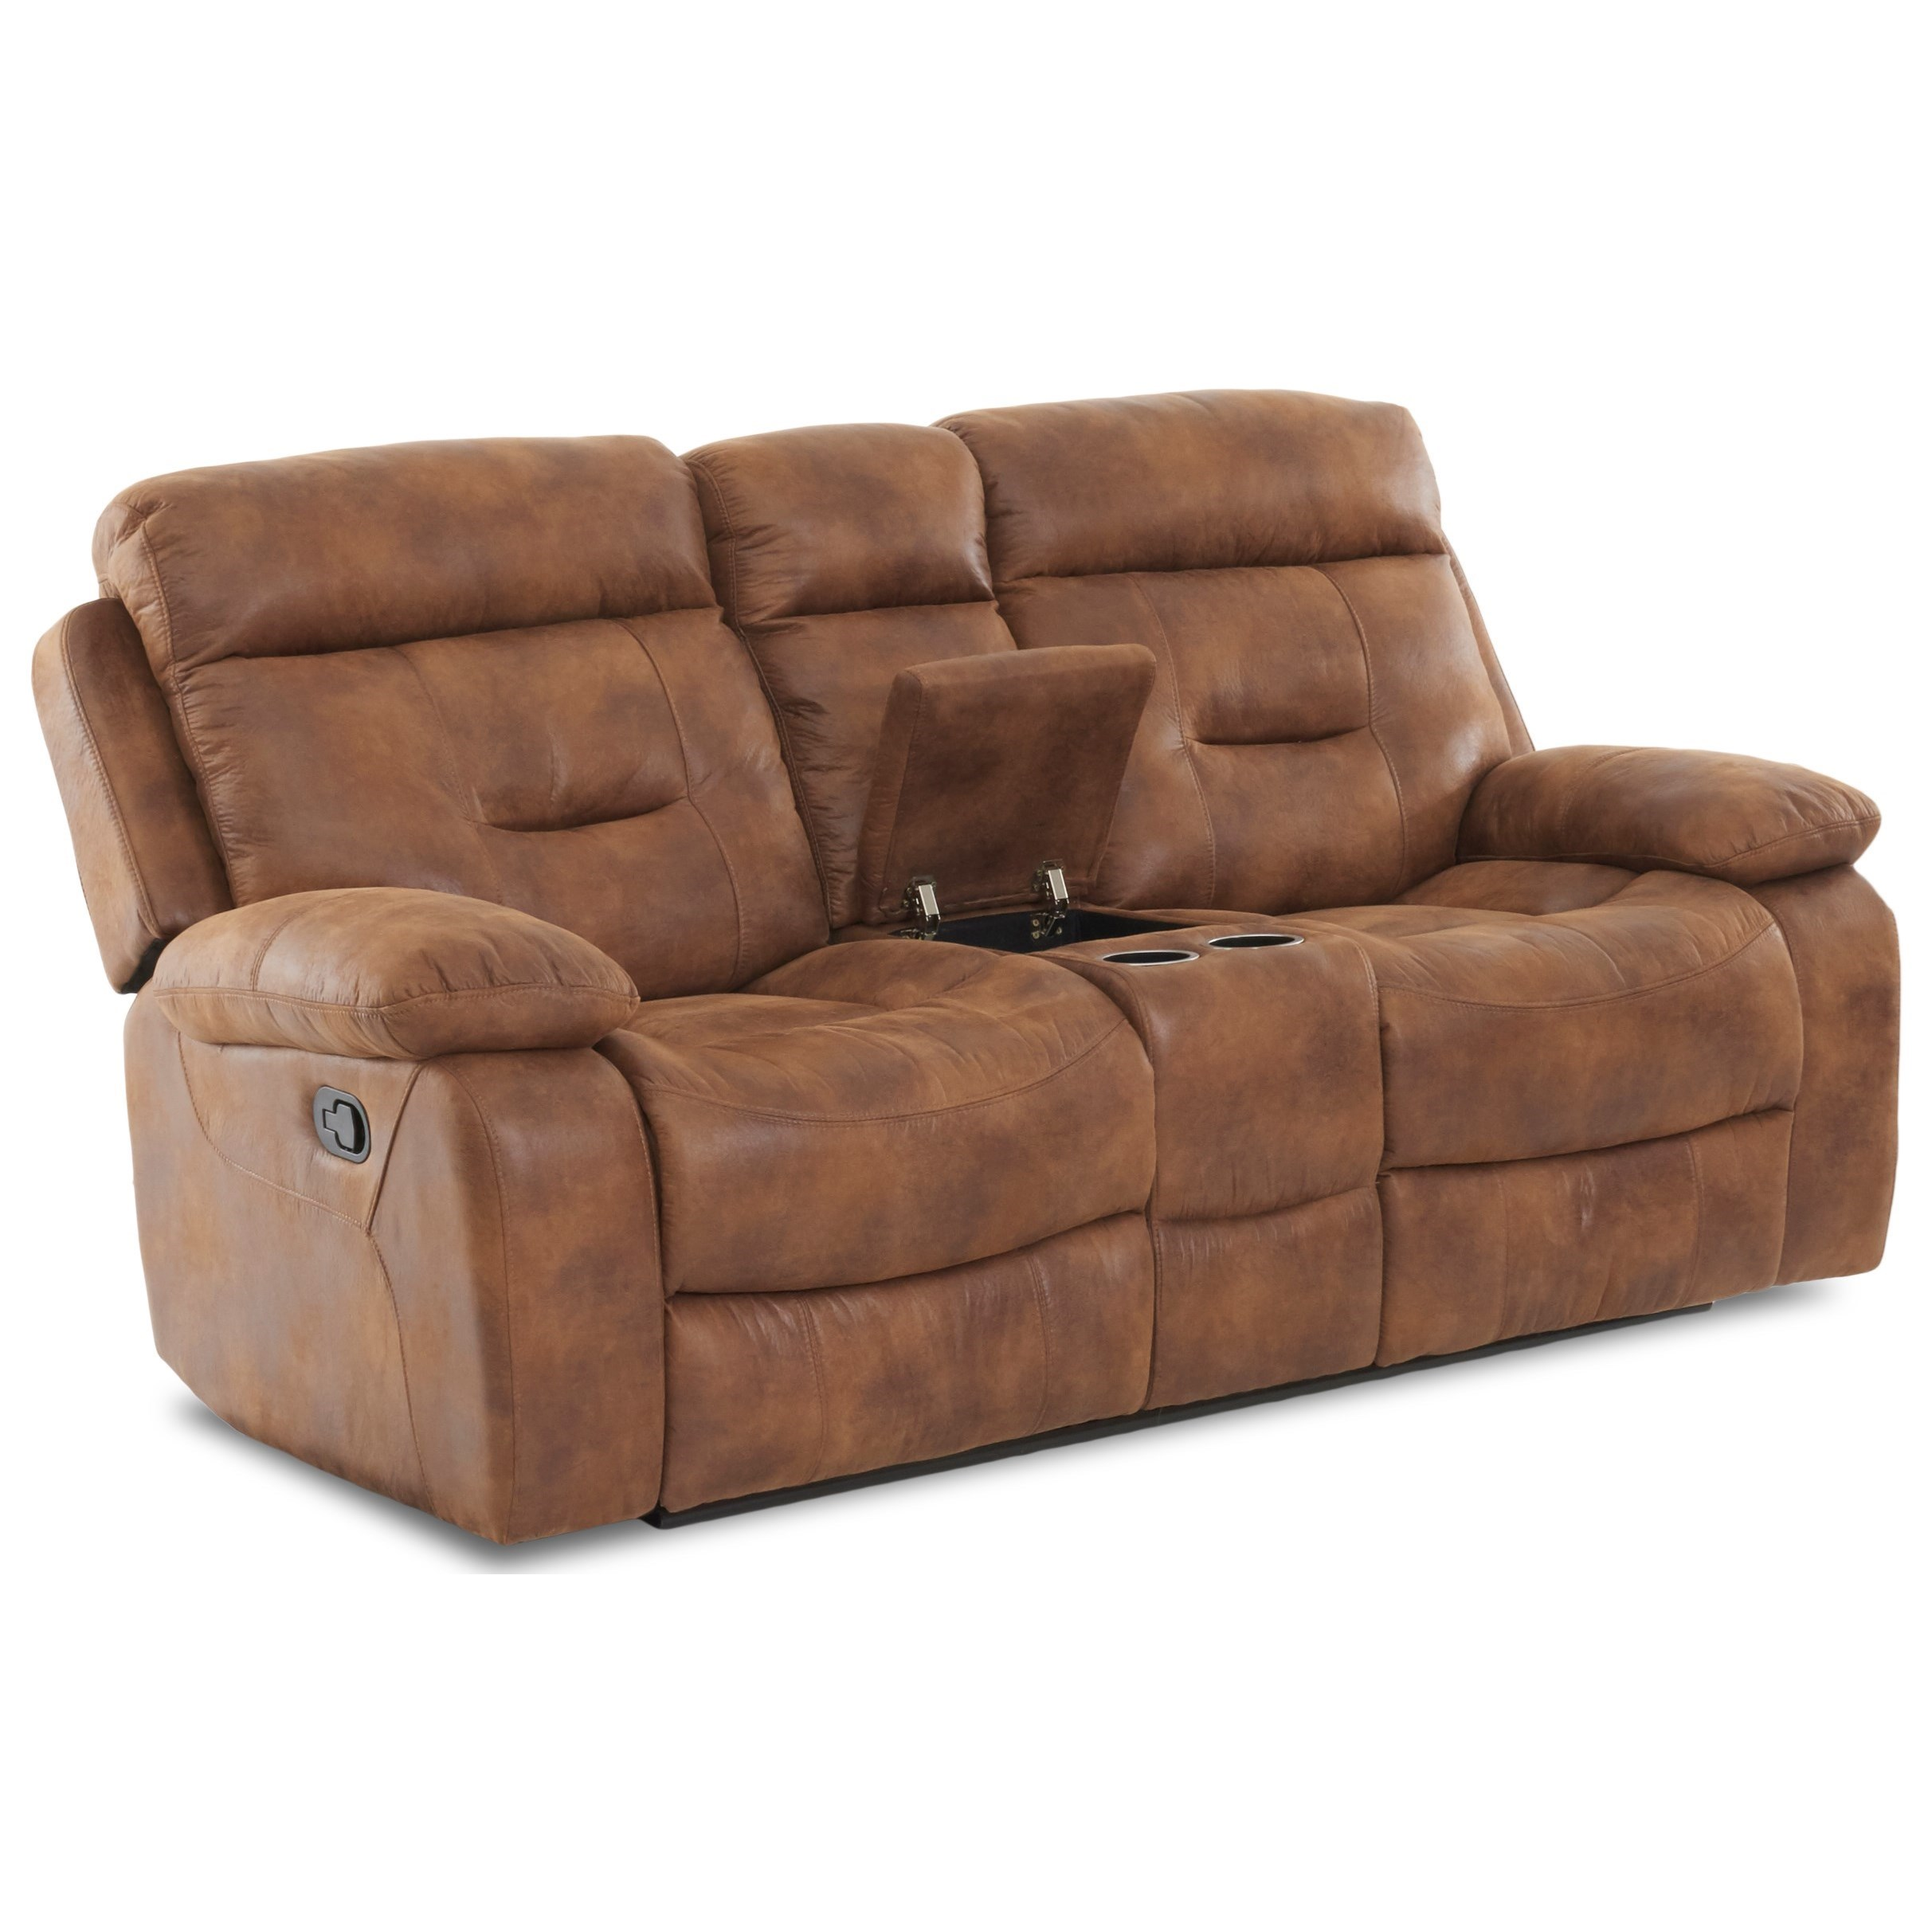 Klaussner International Cano Reclining Loveseat With